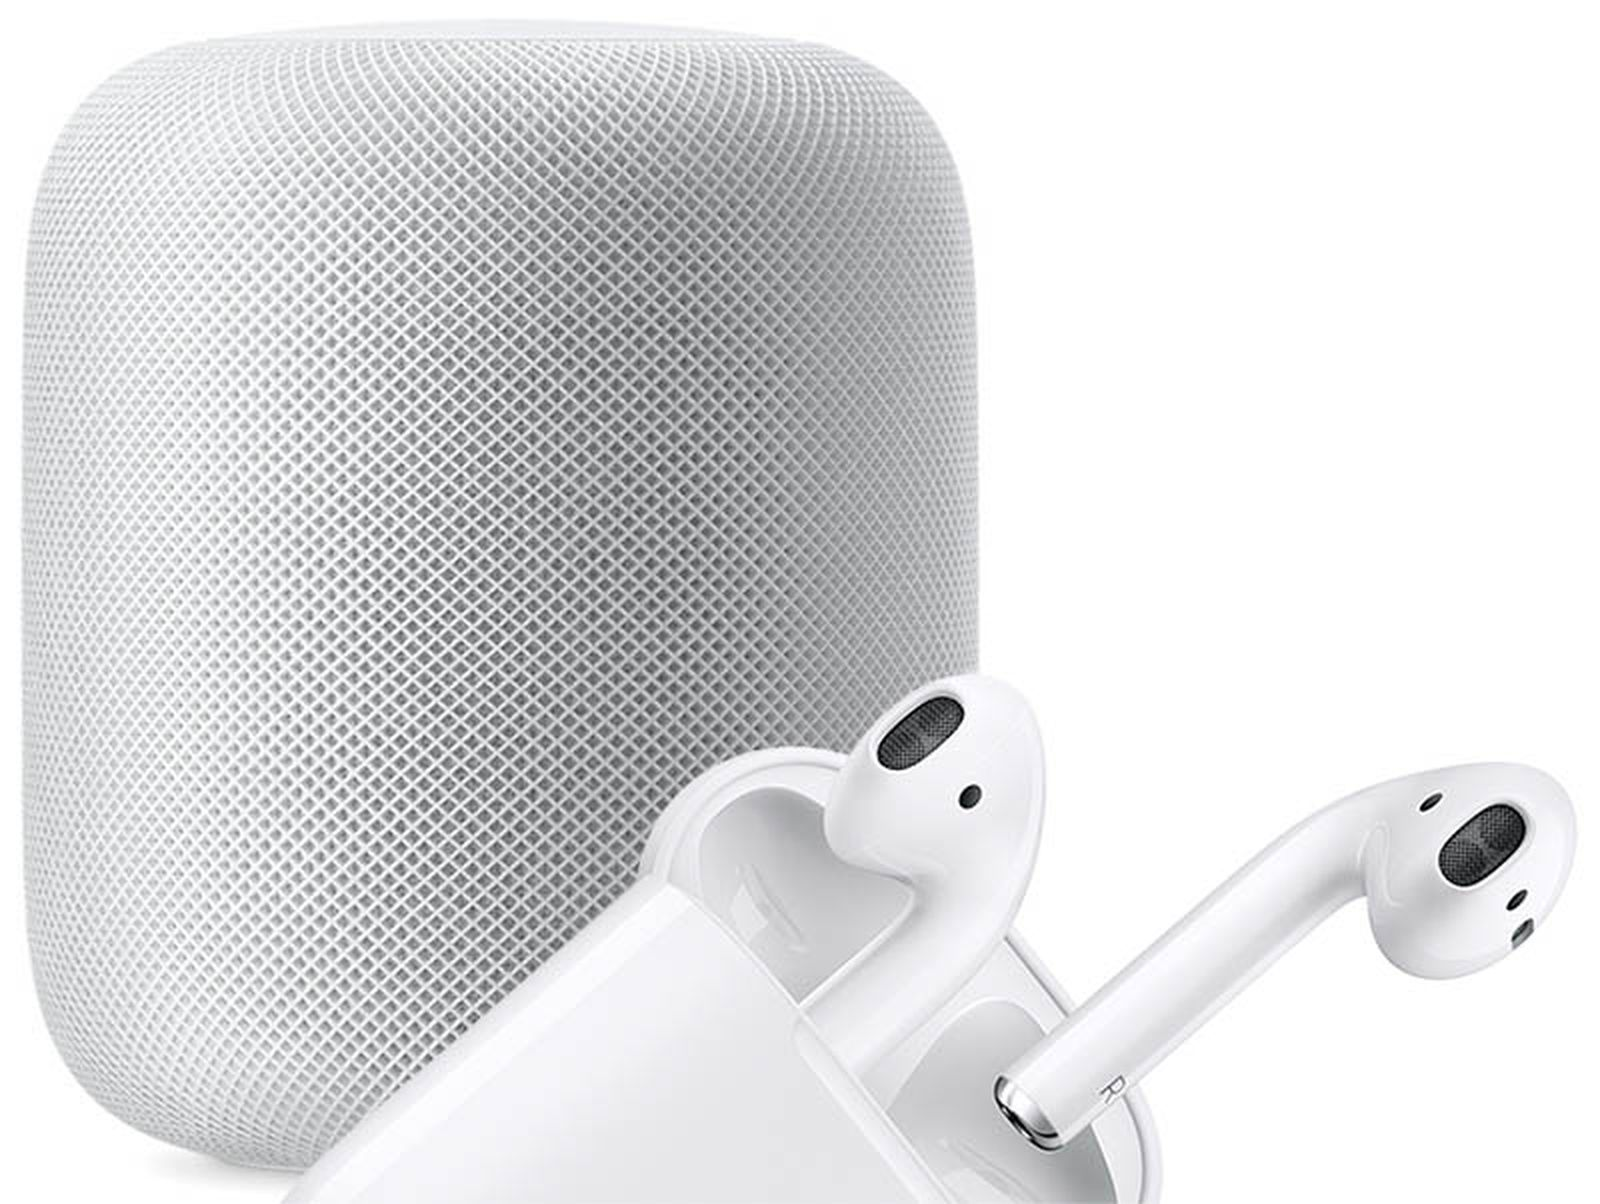 Bloomberg: Apple to Launch 3rd Gen AirPods and 2nd Gen AirPods Pro in 2021,